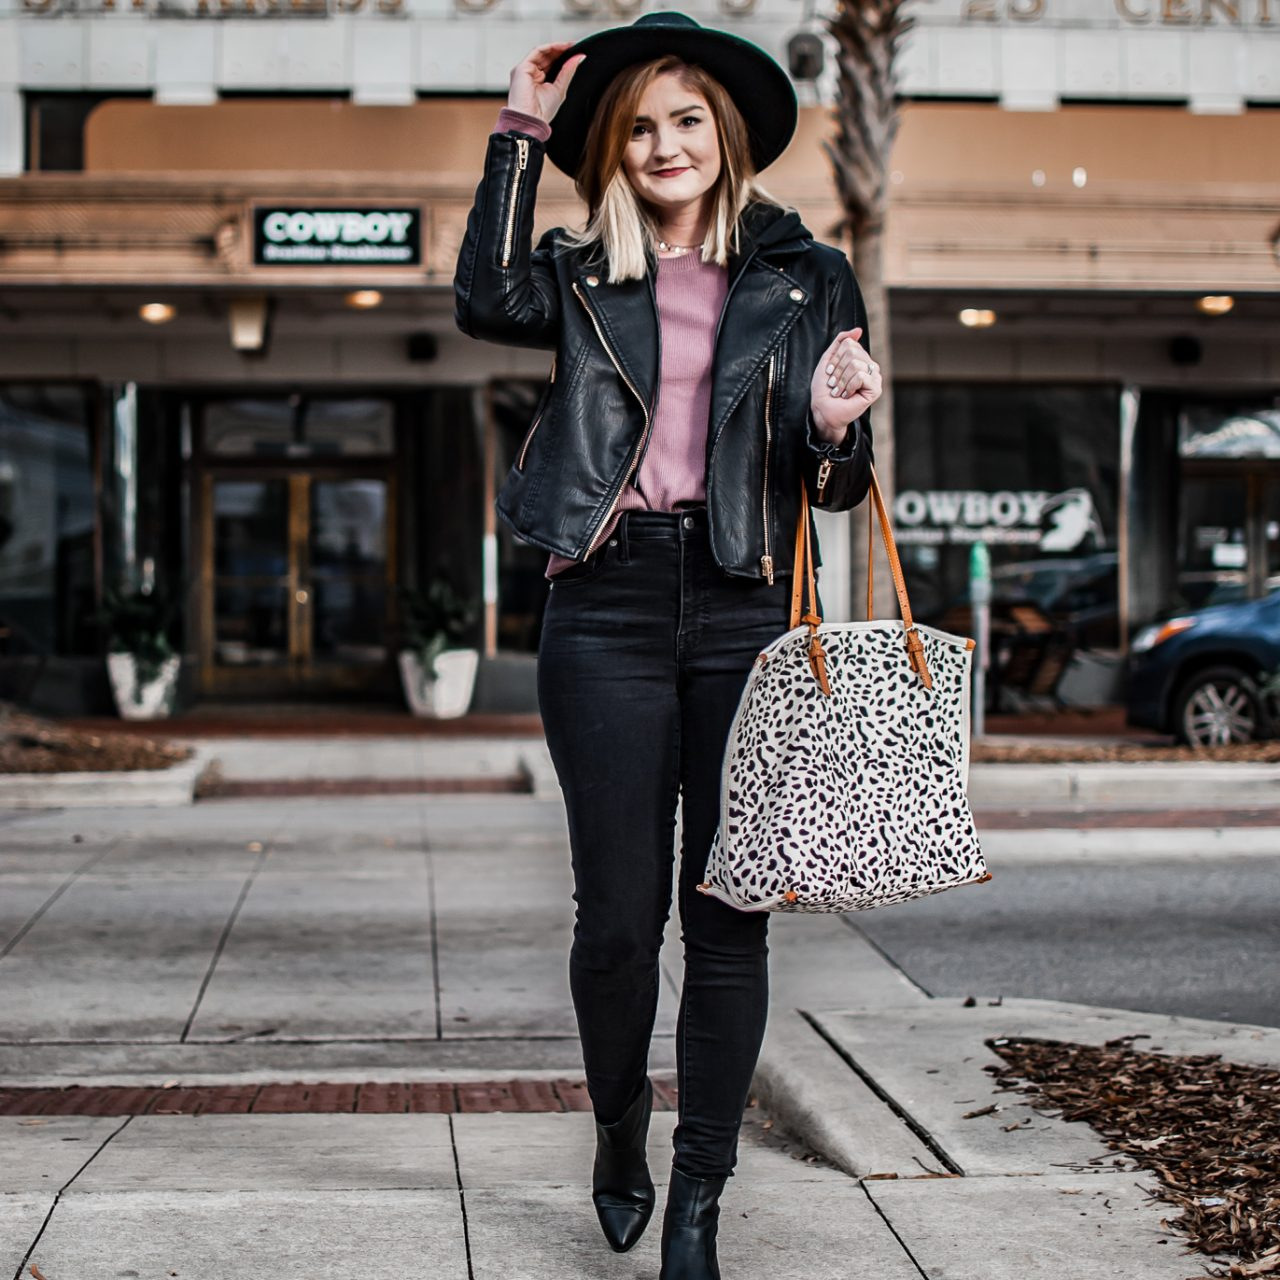 My Top 3 Closet Staples + How to Style an All Black Outfit